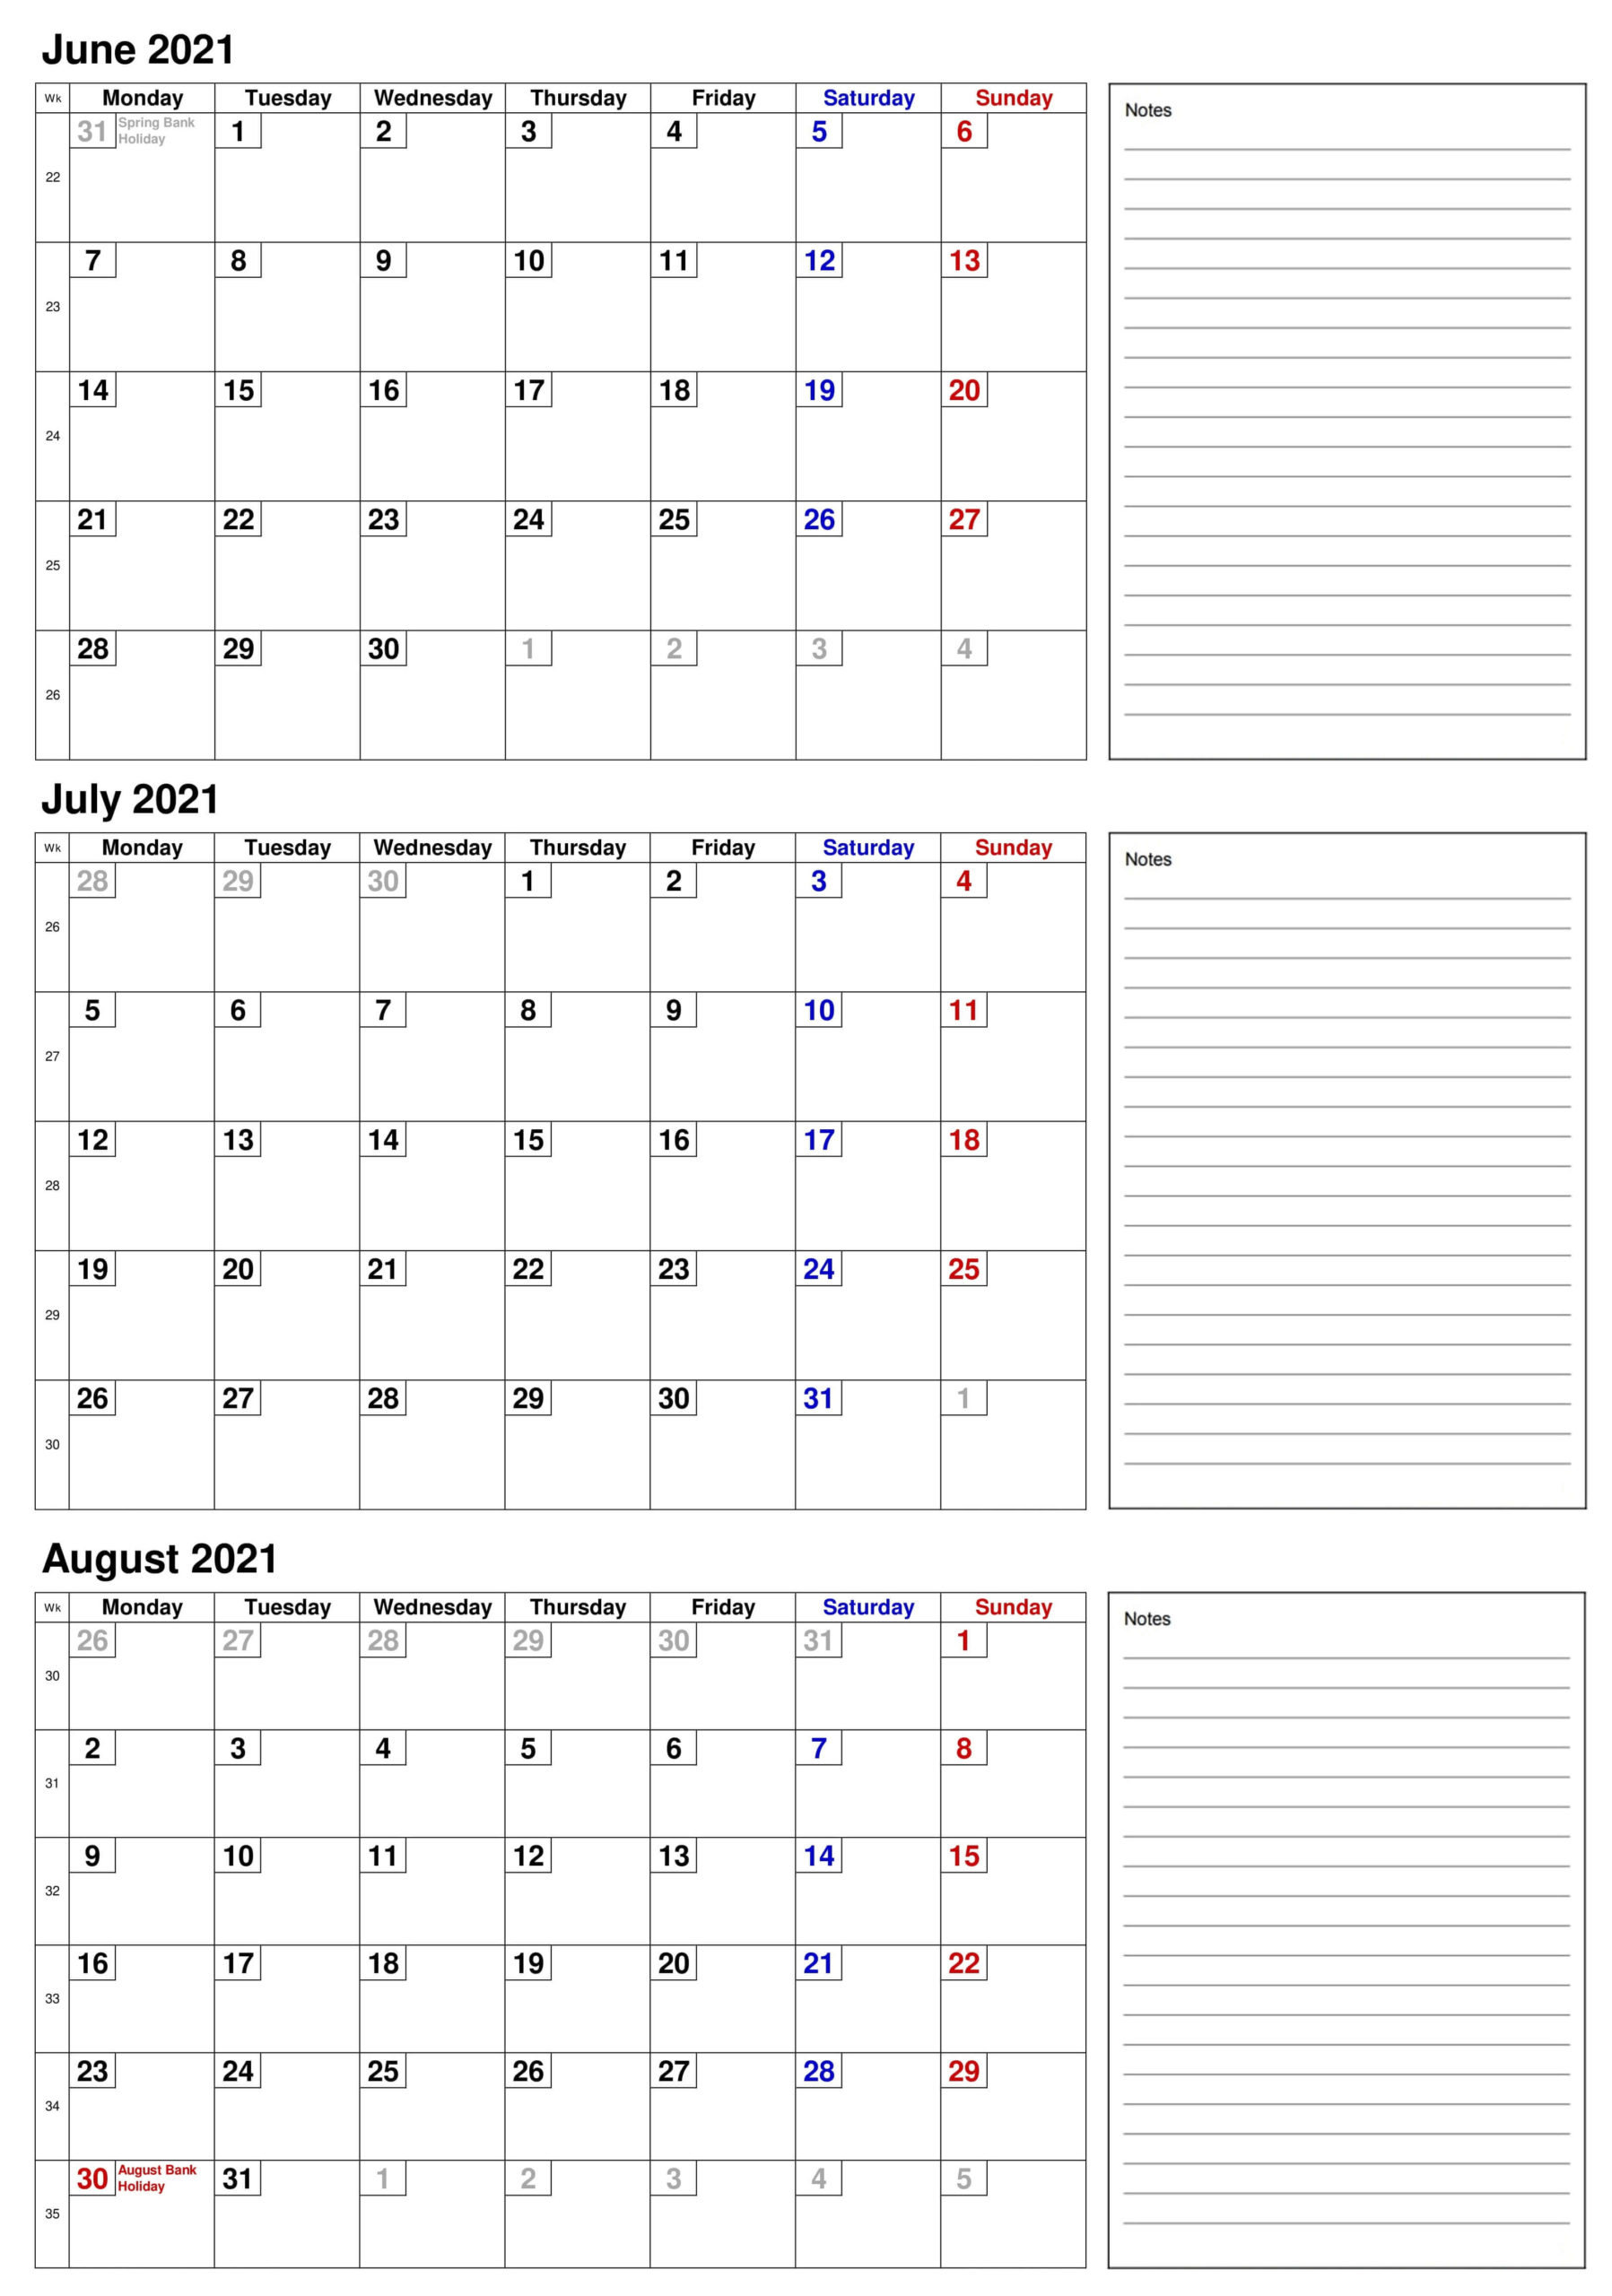 2021 June To August Calendar With Notes